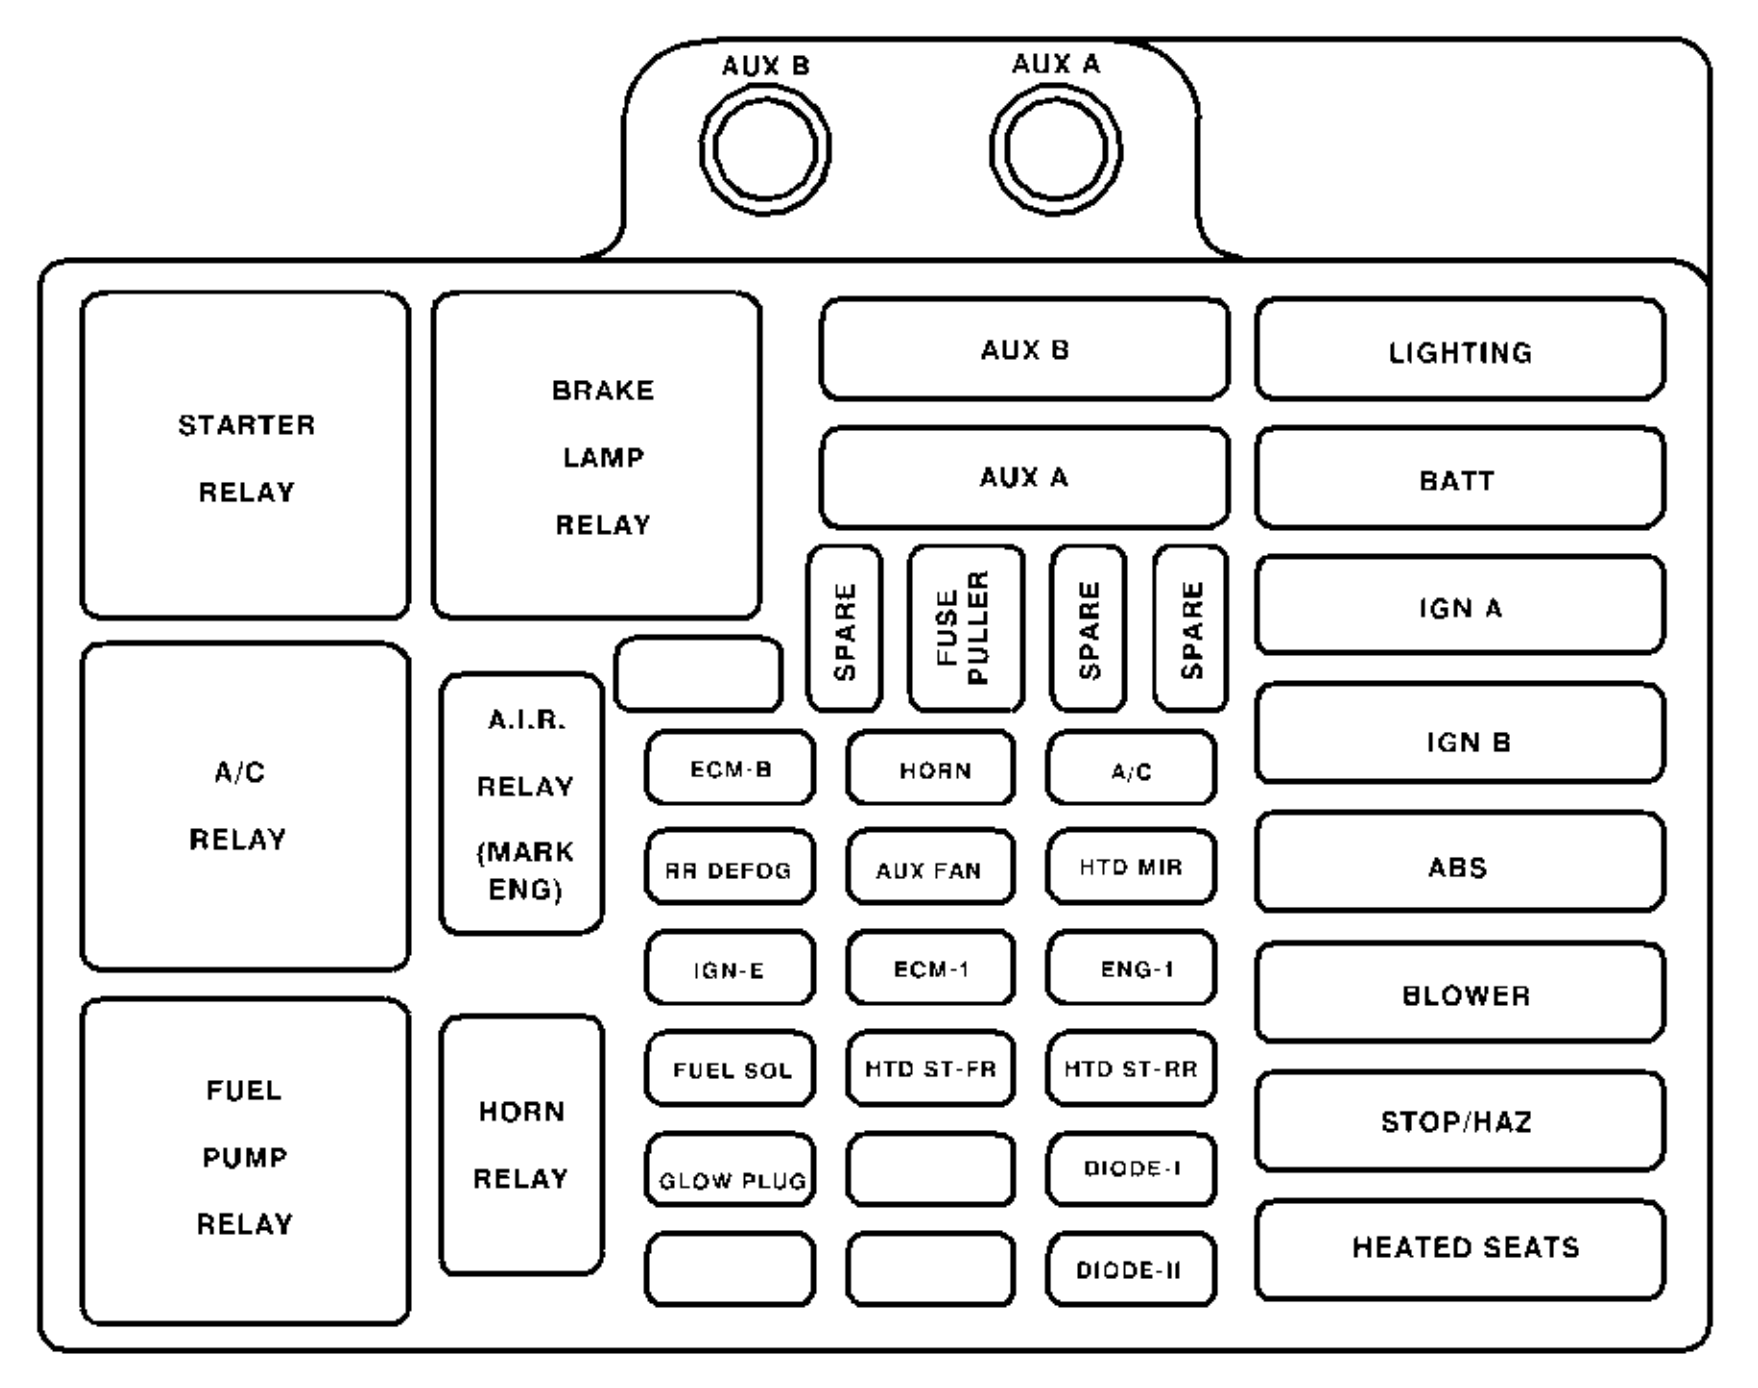 1995 chevy tahoe fuse box diagram data wiring diagrams